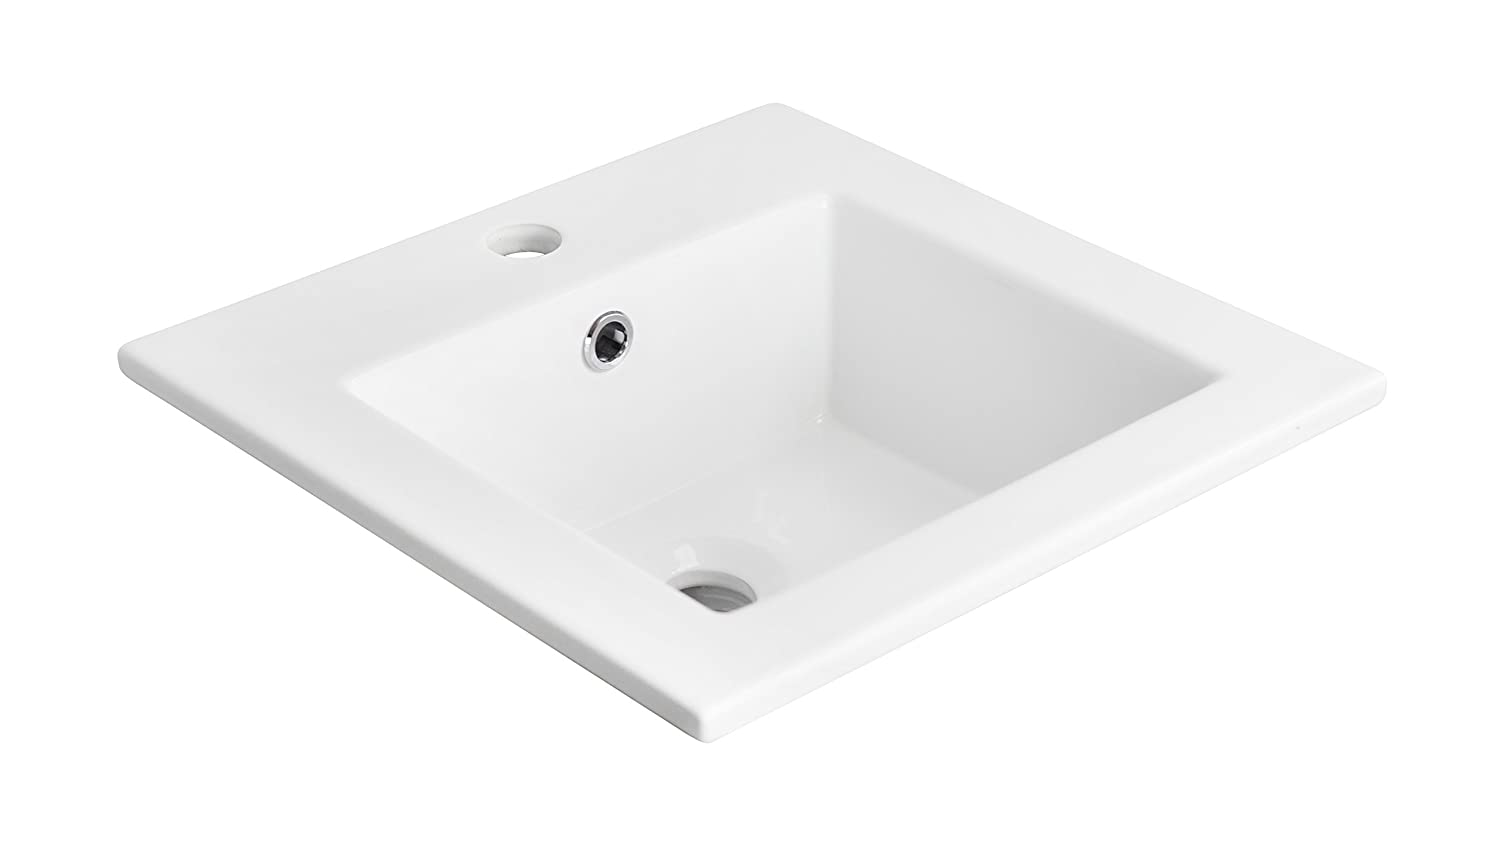 21-in W x 18-in D Above Counter Square Vessel In White Color For Single Hole Faucet IMG Imports Inc. AI-11-647